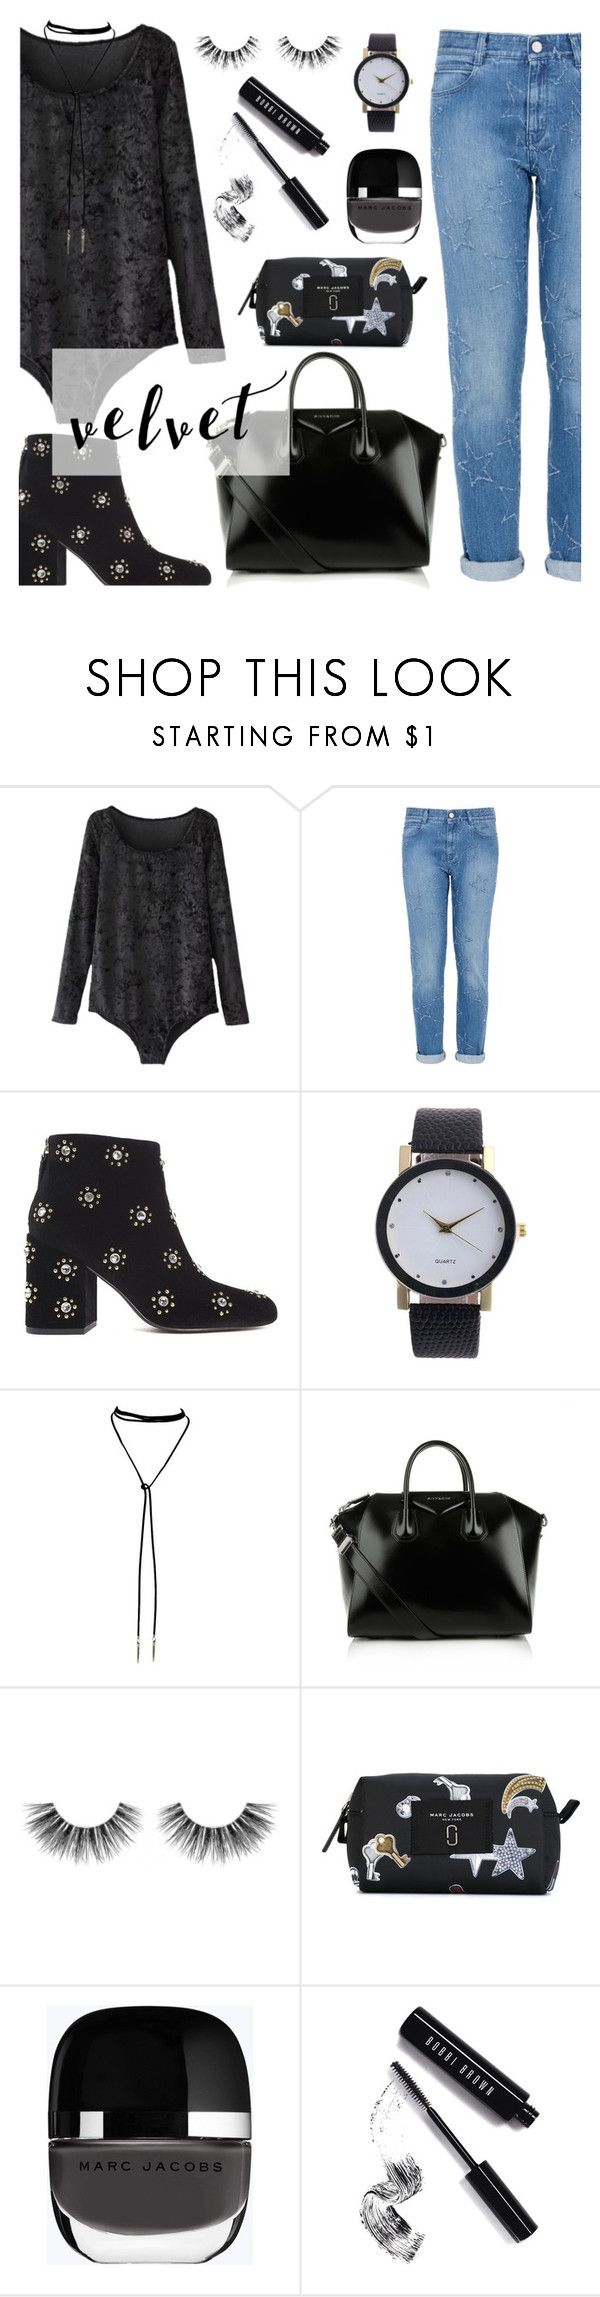 """""""Crushing on Velvet"""" by dora04 ❤ liked on Polyvore featuring STELLA McCARTNEY, Senso, Givenchy, Velour Lashes, Marc Jacobs and Bobbi Brown Cosmetics"""